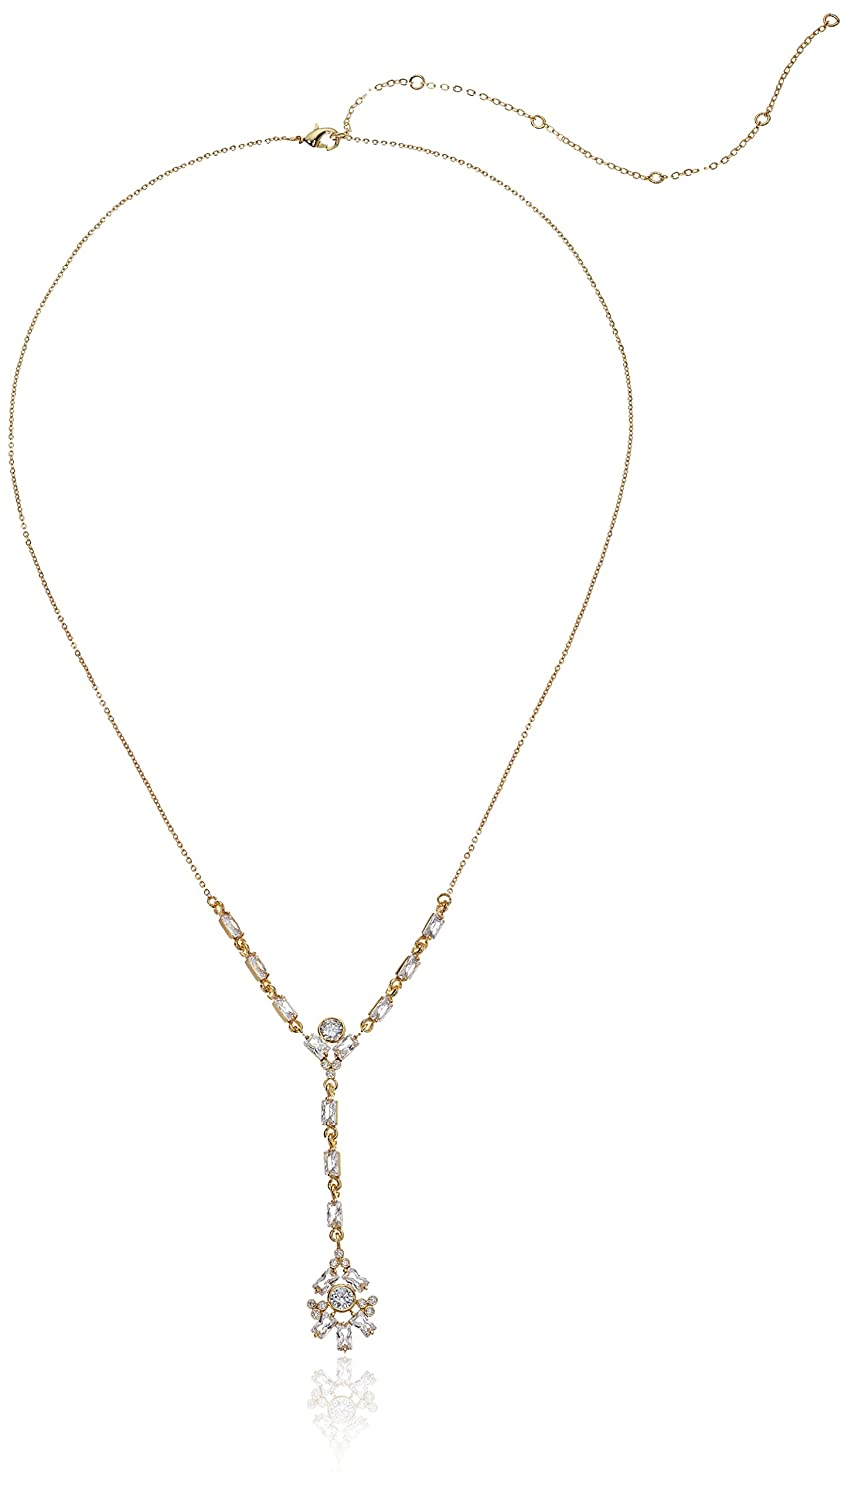 Clgo CZ by Kenneth Jay Lane Womens Baguette Cluster Y Shaped Necklace One Size KN693/_CLGO